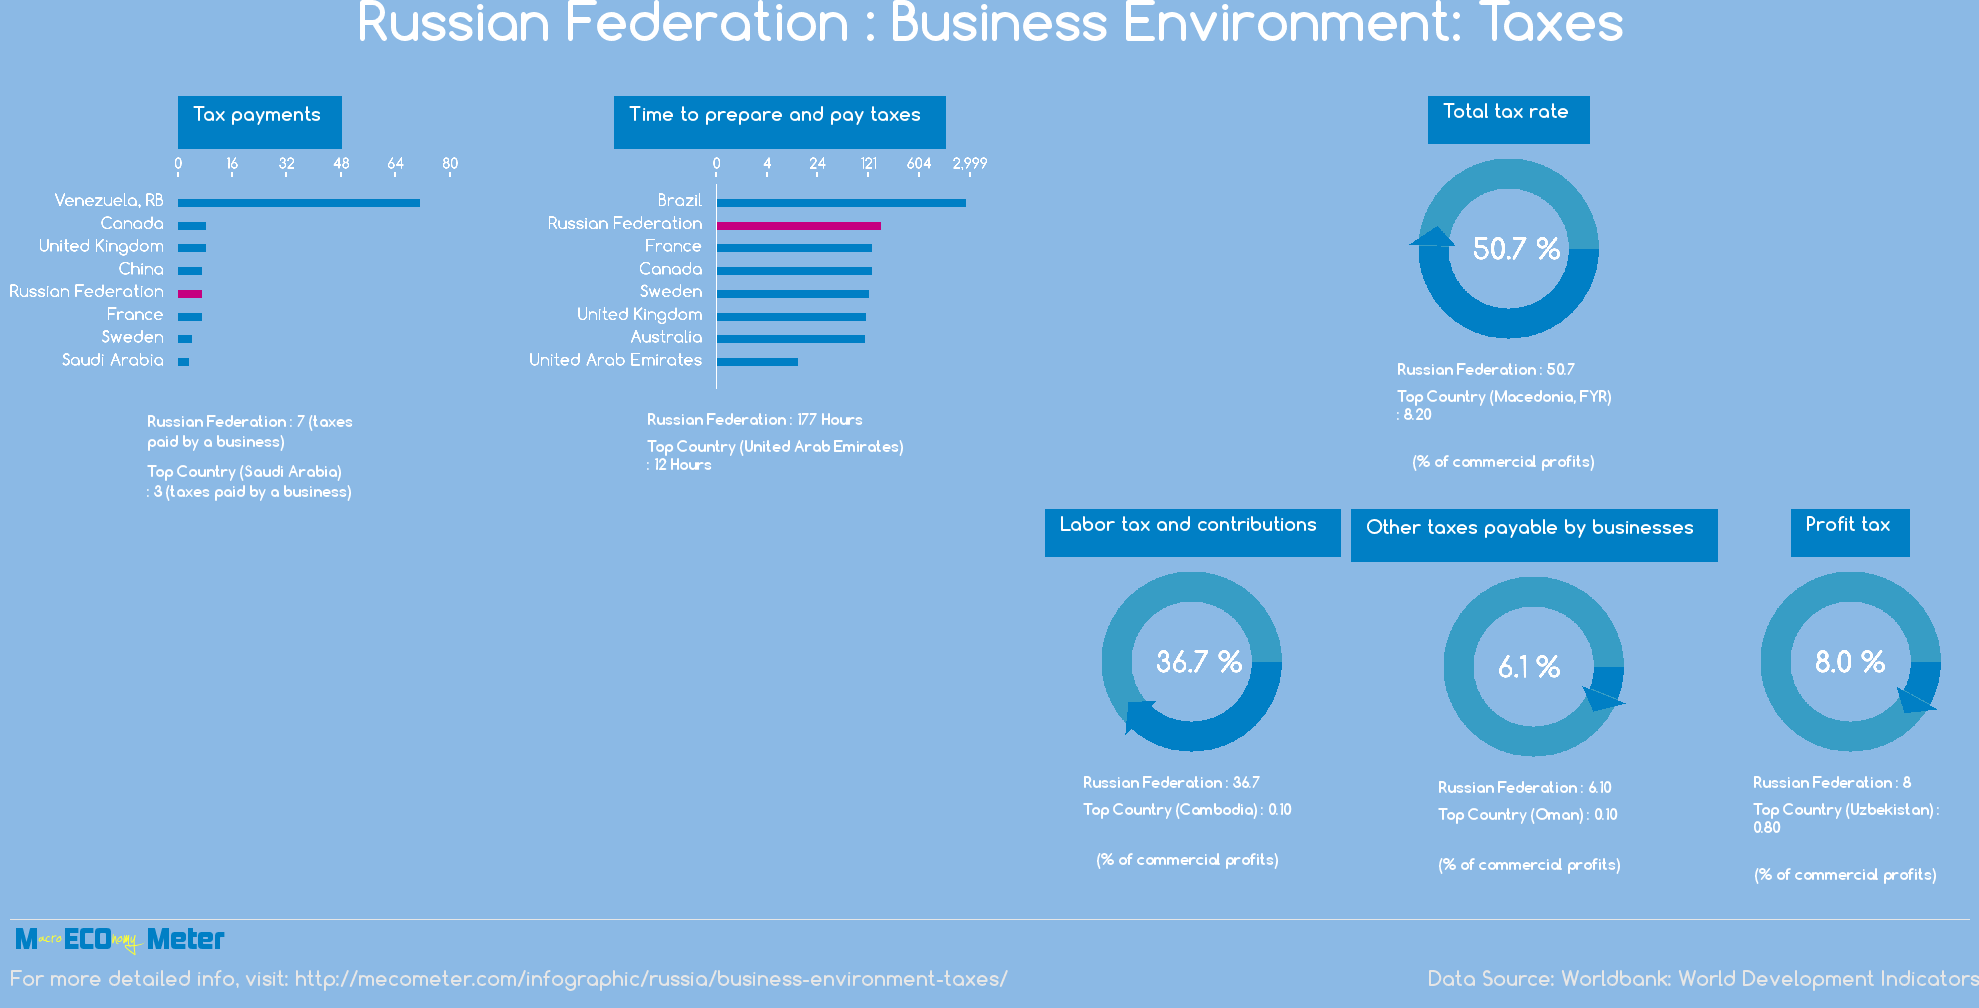 Russian Federation : Business Environment: Taxes